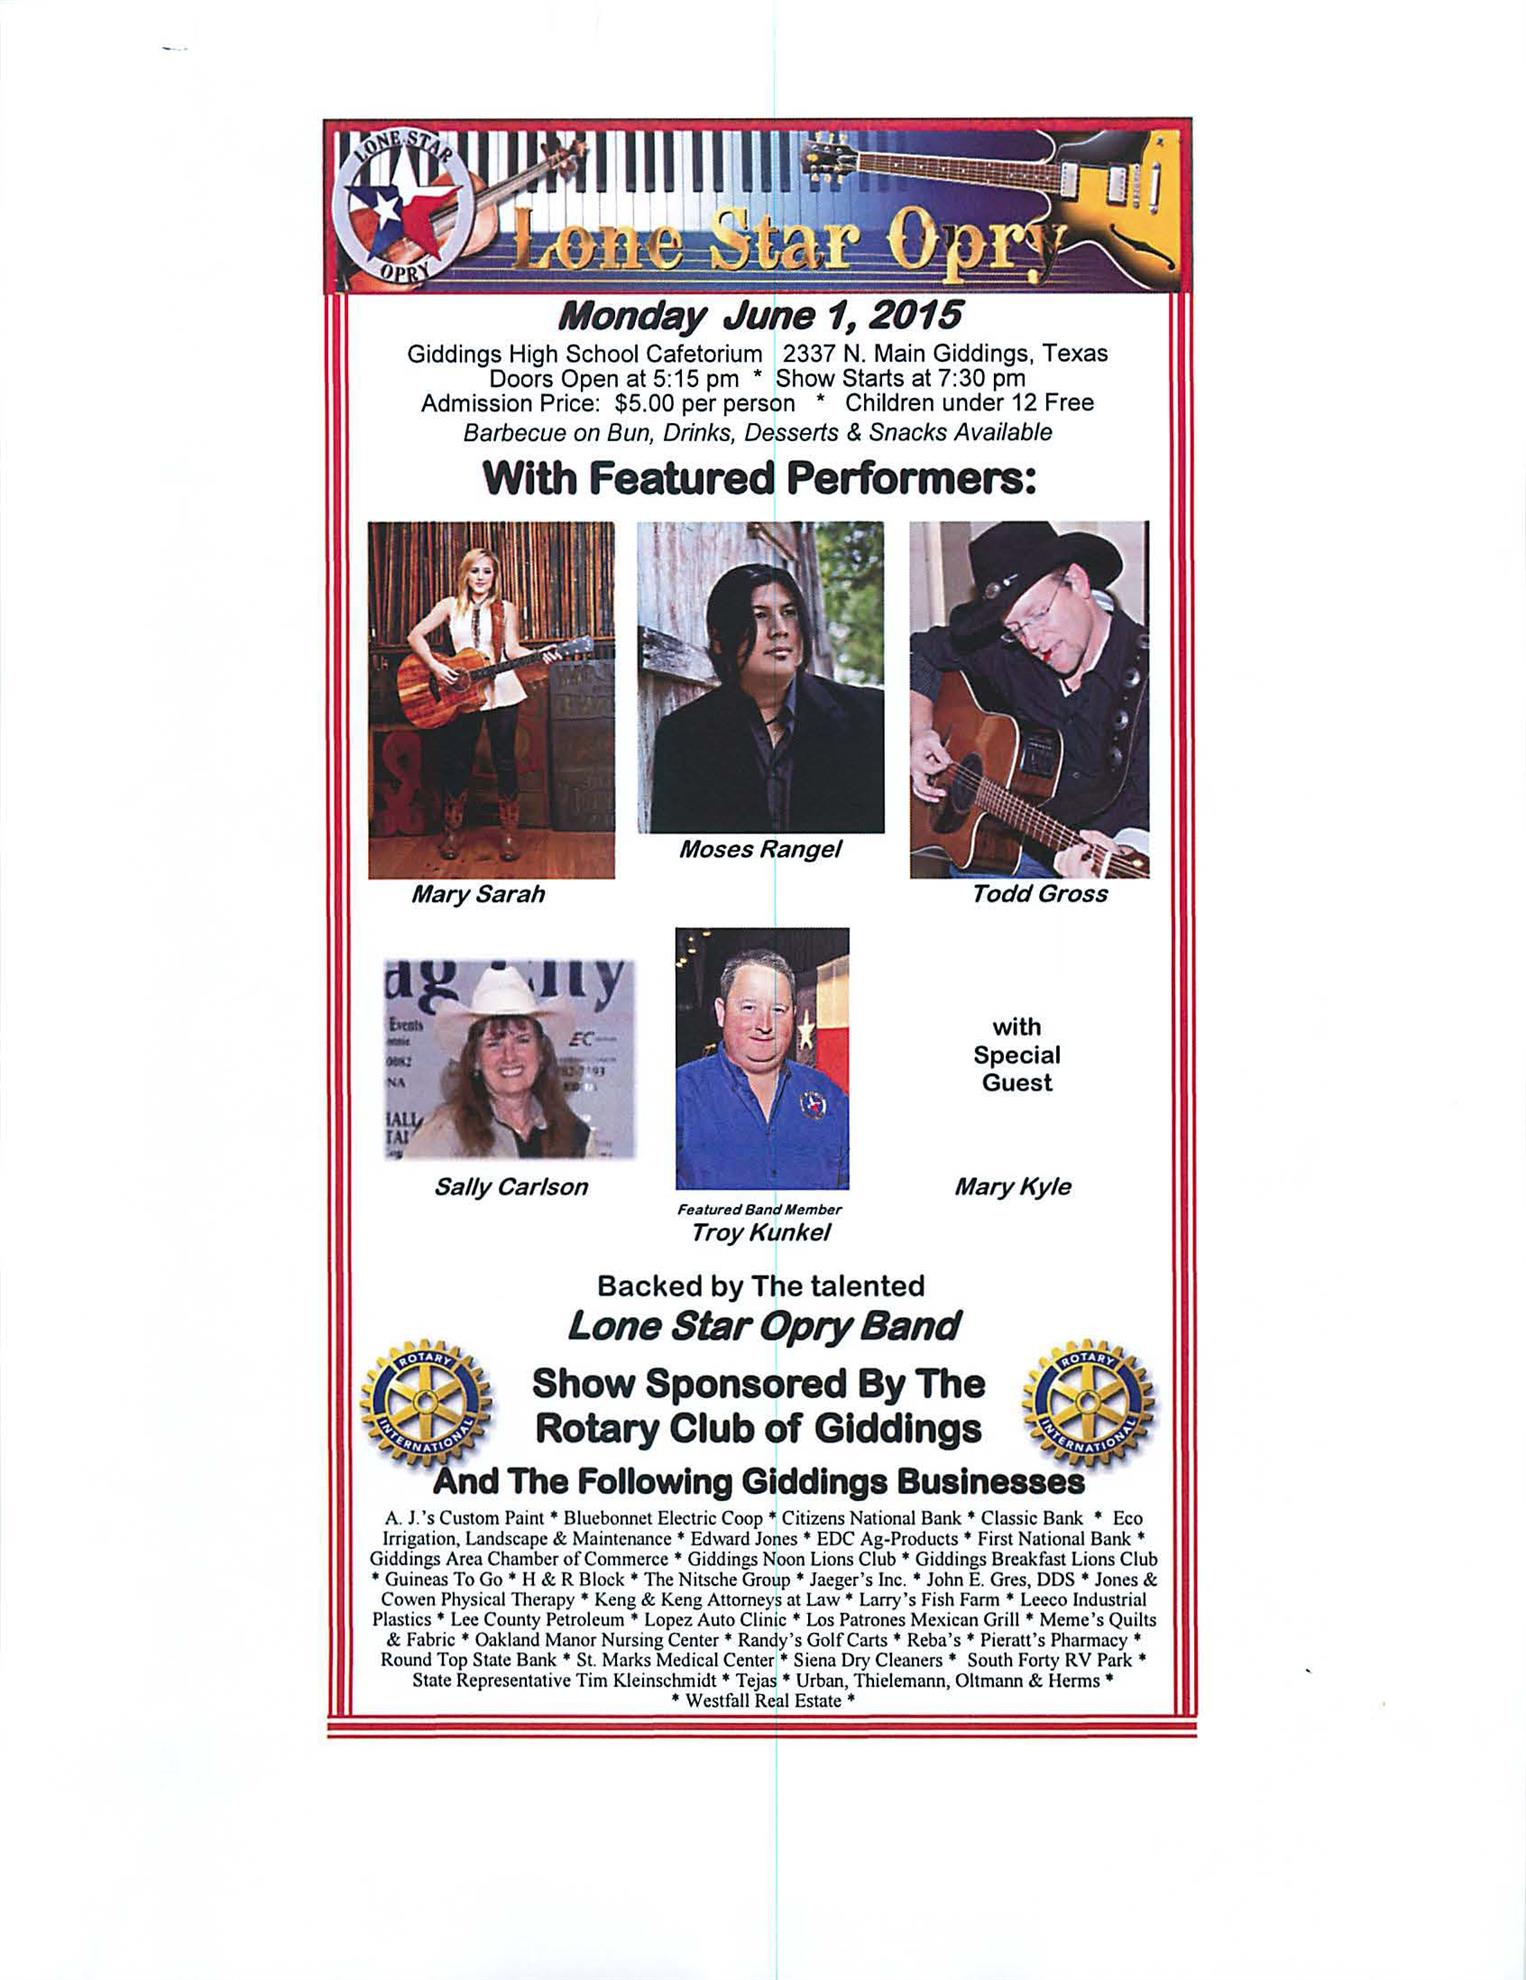 2015/06/01 Lone Star Opry Presents Country Music Monday